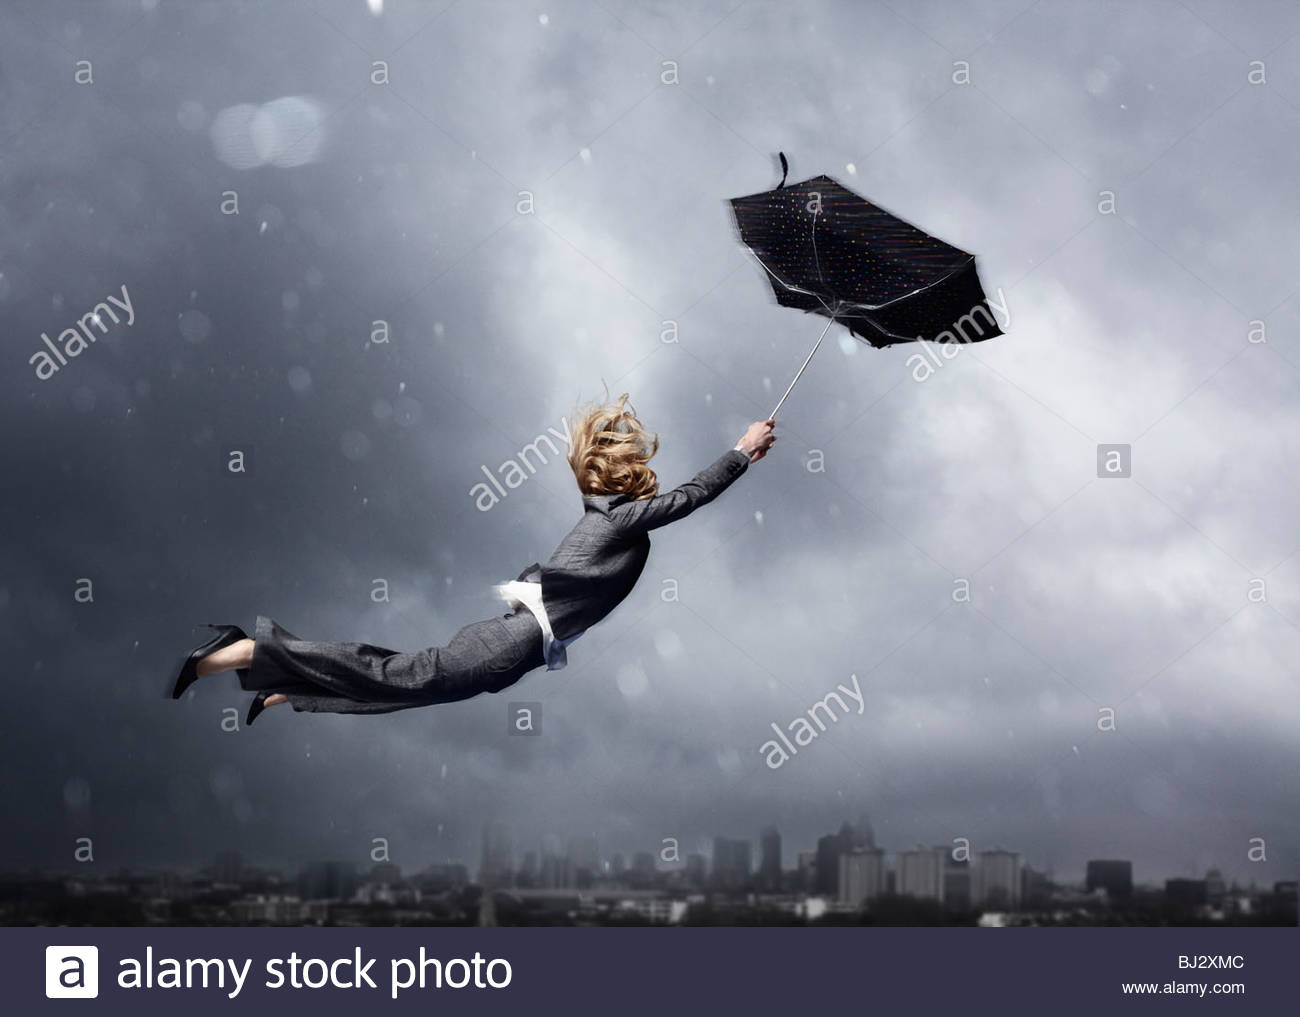 Woman being blown away by an umbrella - Stock Image